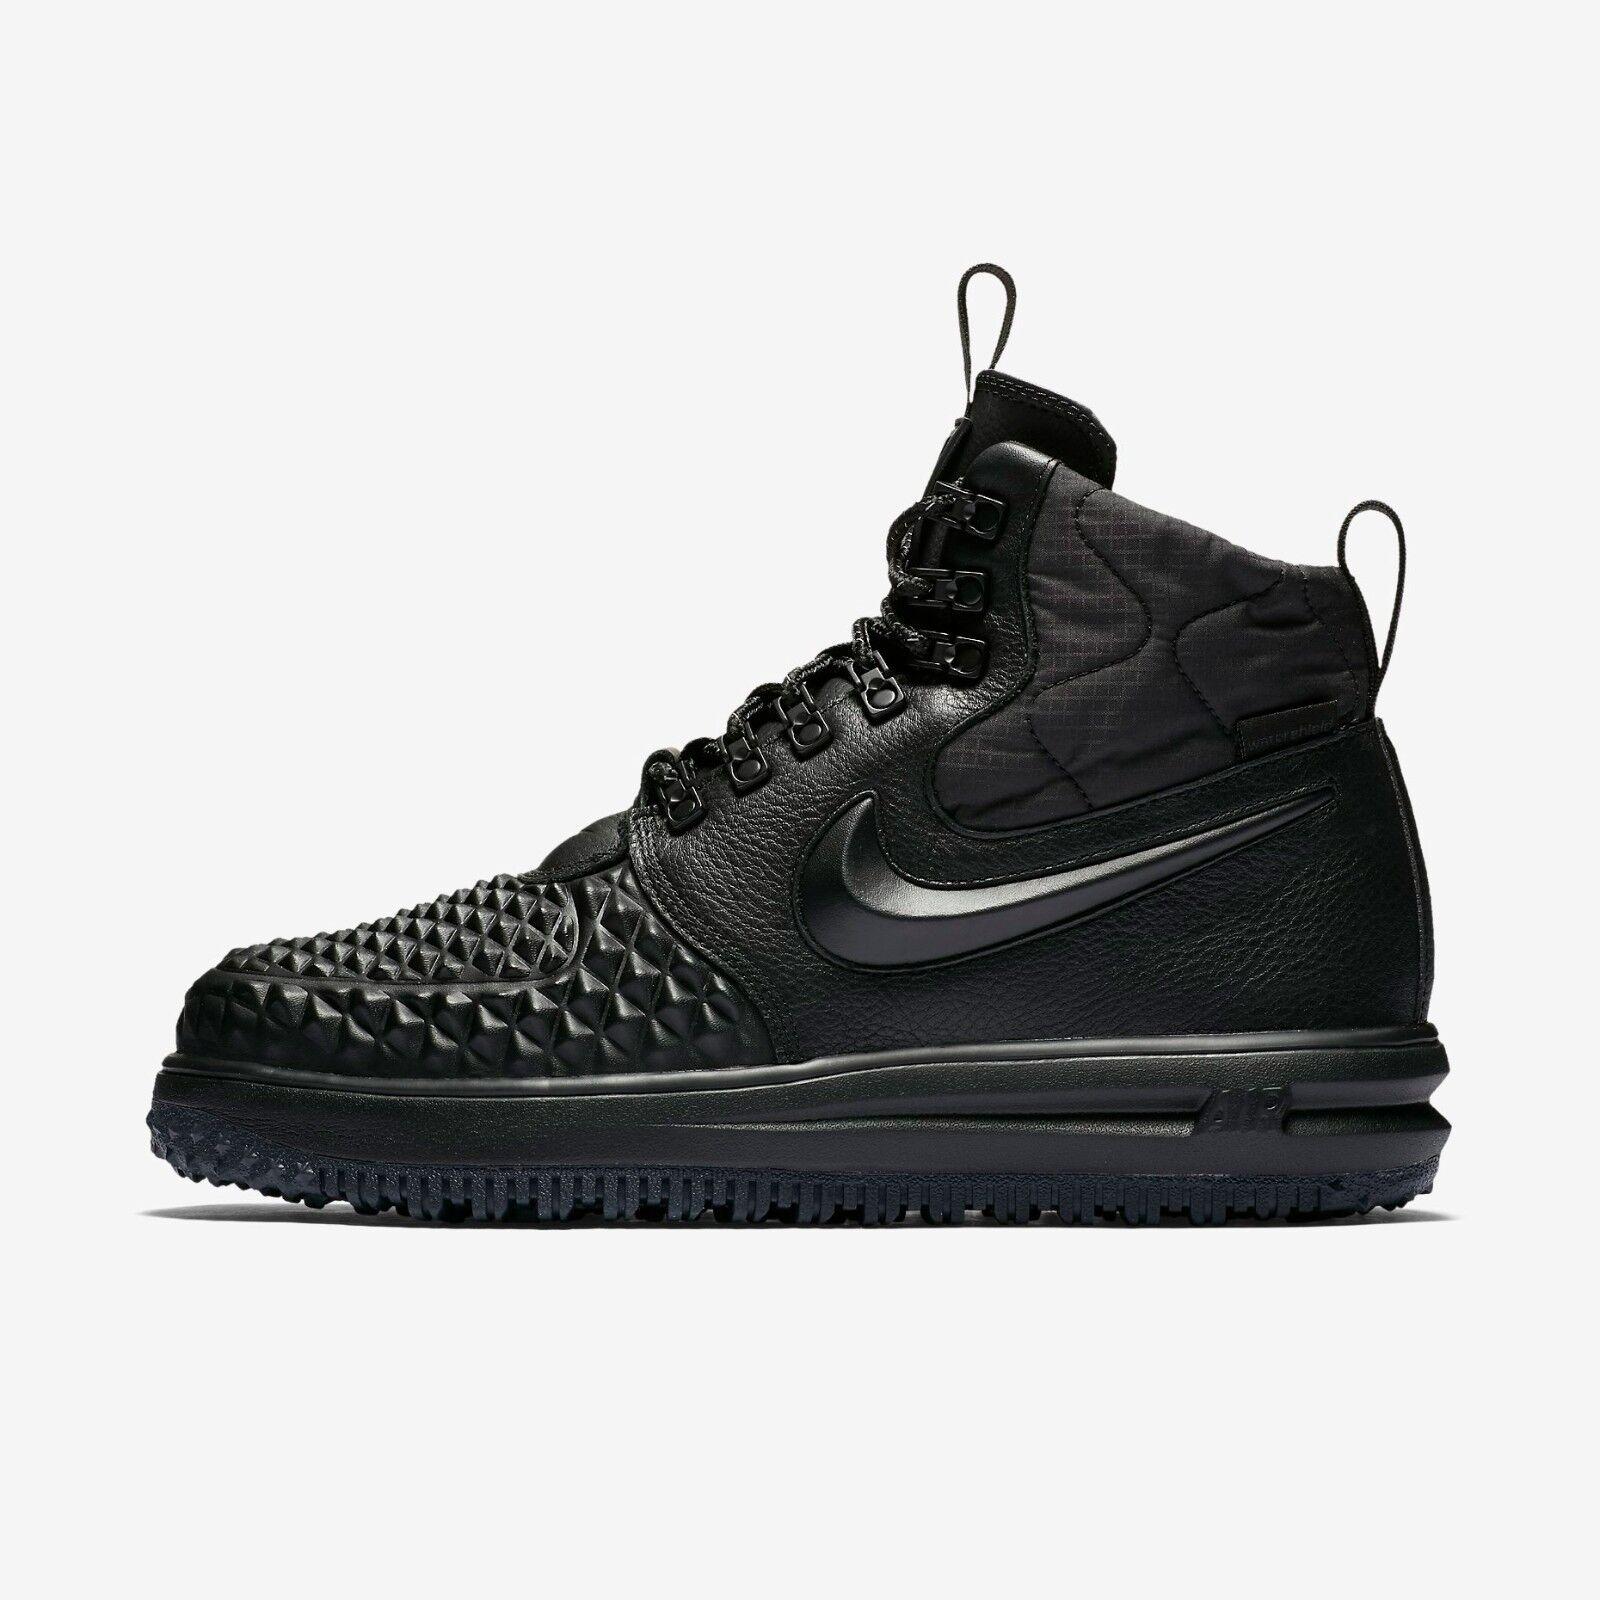 NIKE LUNAR FORCE 1 DUCKBOOT 2017 916682-002 BLACK BLACK ANTHRACITE TRIPLE BLACK